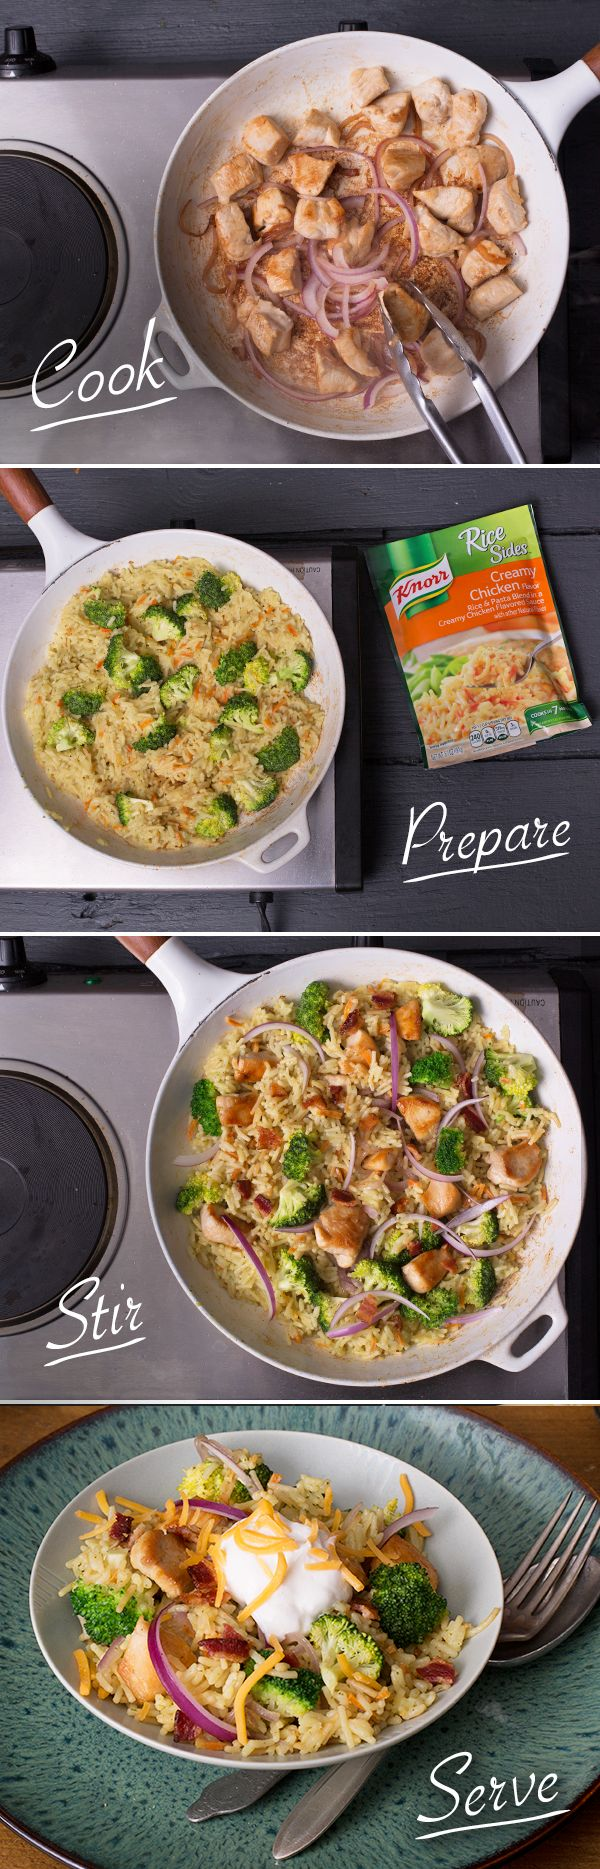 Make your weeknight dinner stand out by tossing together fresh ingredients & Knorr® Rice Sides™ - Creamy Chicken flavor! Just cook chicken & onion, stirring frequently, until chicken is thoroughly cooked. Remove & set aside. Prepare Knorr® Rice Sides™ - Creamy Chicken flavor in same skillet according to package directions. Stir in broccoli during the last 5 mins of cook time. Stir in chicken & onion. Sprinkle with bacon. TIP: Serve, if desired, with sour cream and shredded cheddar cheese!